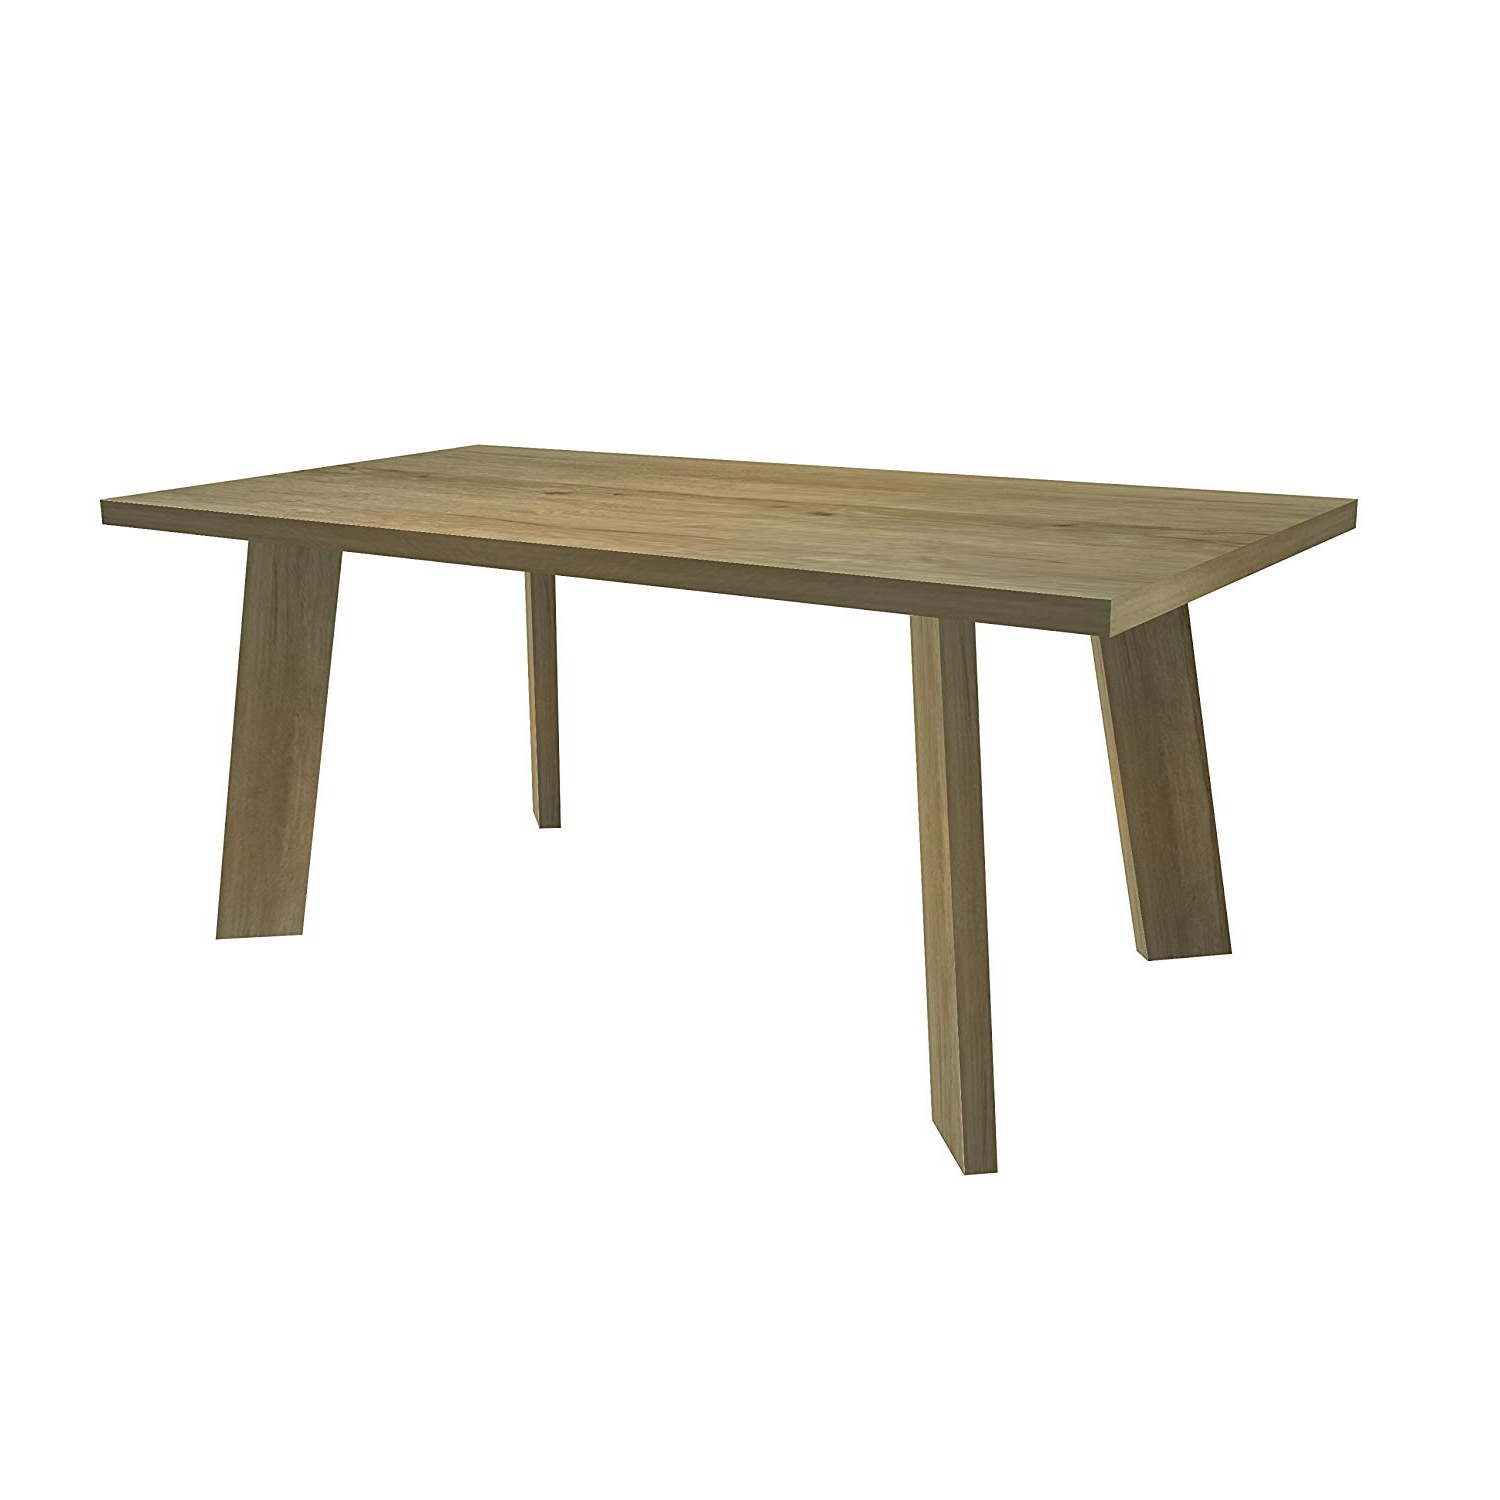 Mid Century Rectangular Top Dining Tables With Wood Legs With Newest Amazon – Wooden Rectangular Dining Table For 6 Mid (View 5 of 25)